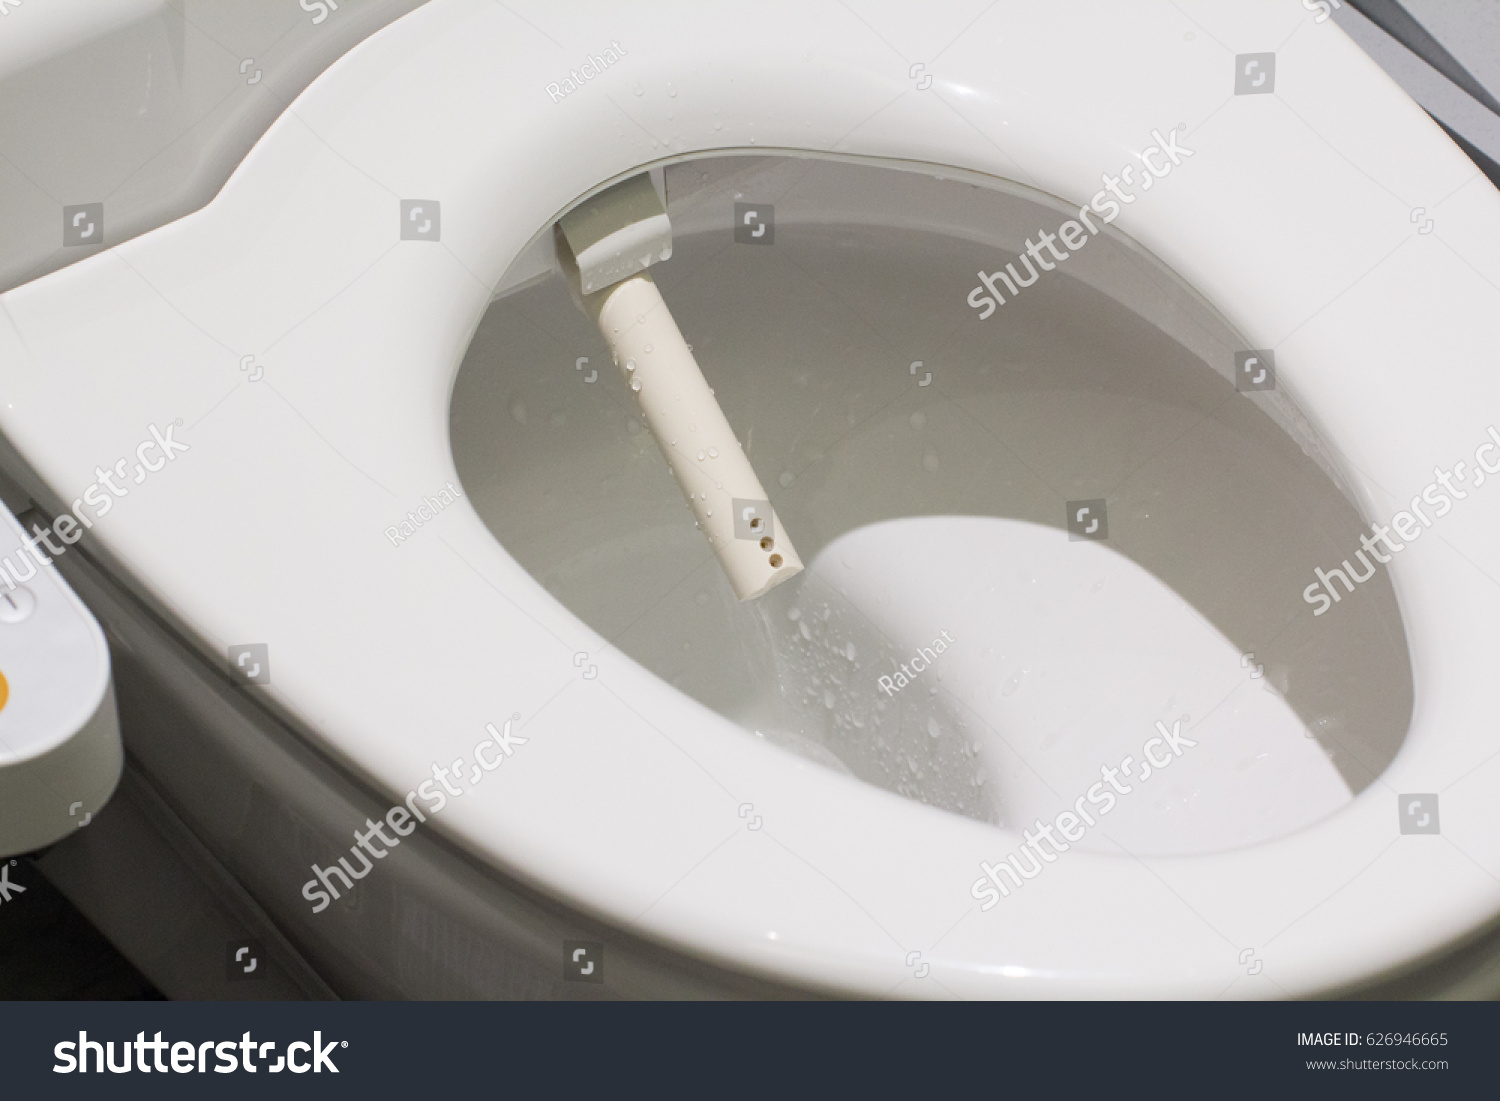 Toilet Electronic Seat Automatic Flush Japan Stock Photo (Edit Now ...